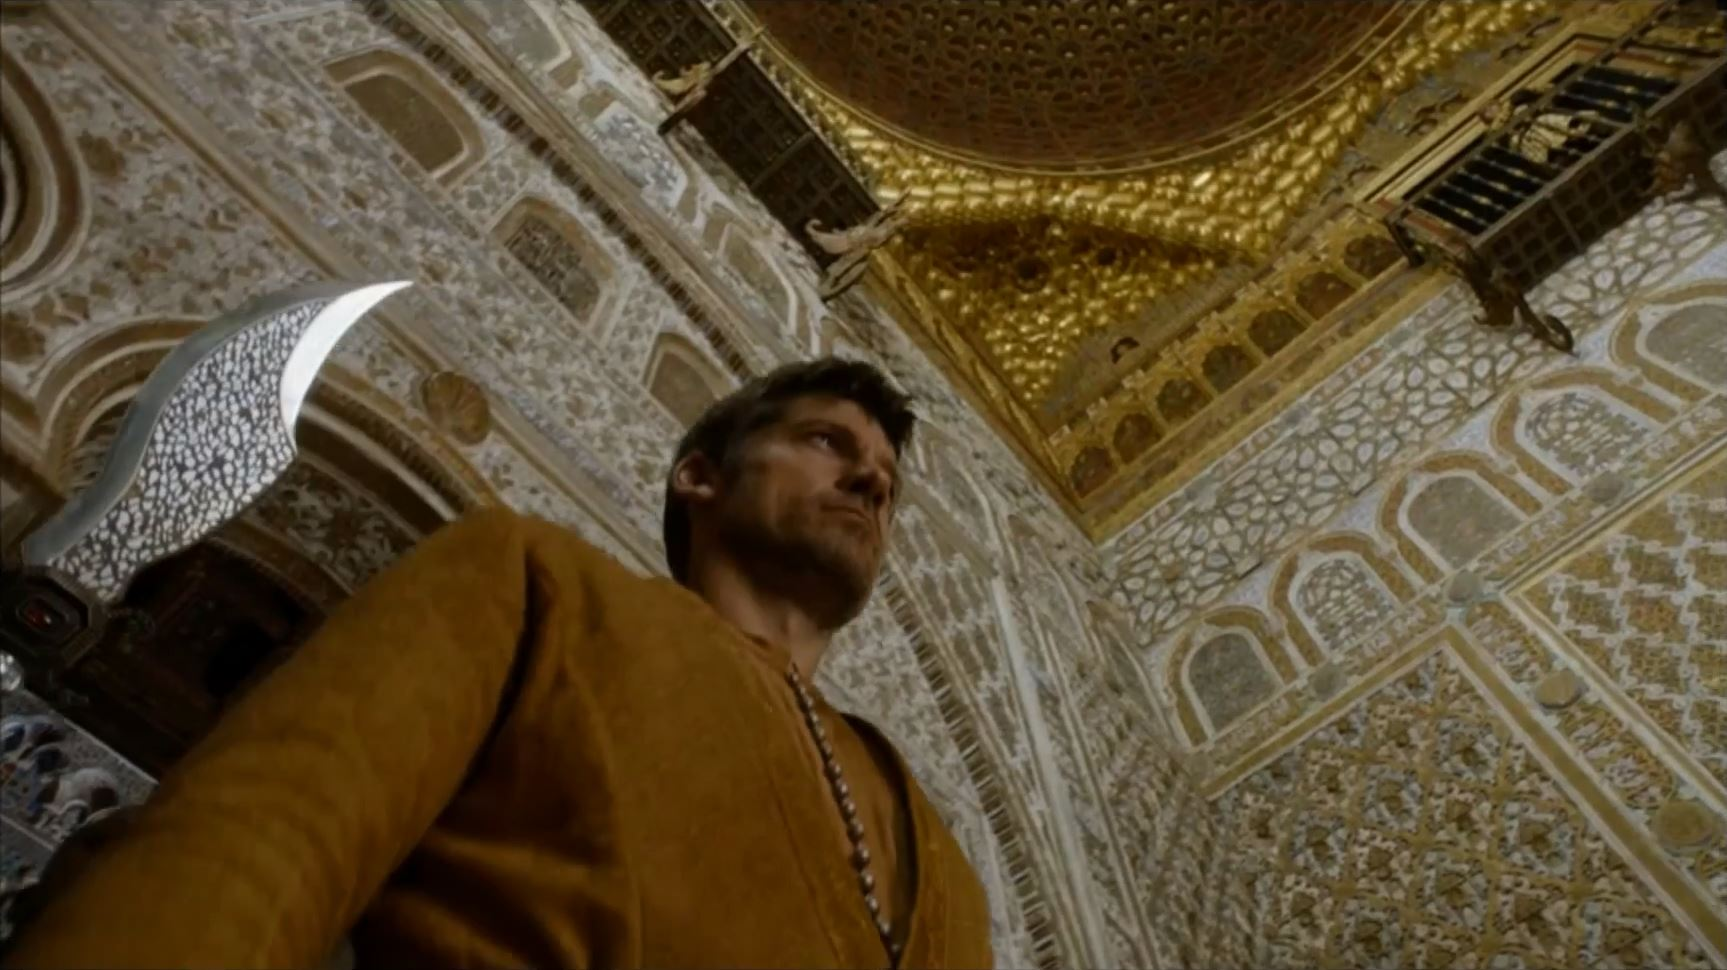 Game of Thrones Season 5 Trailer 2. Ser Jaime Lannister ( Nikolaj Coster-Waldau) in Dorne